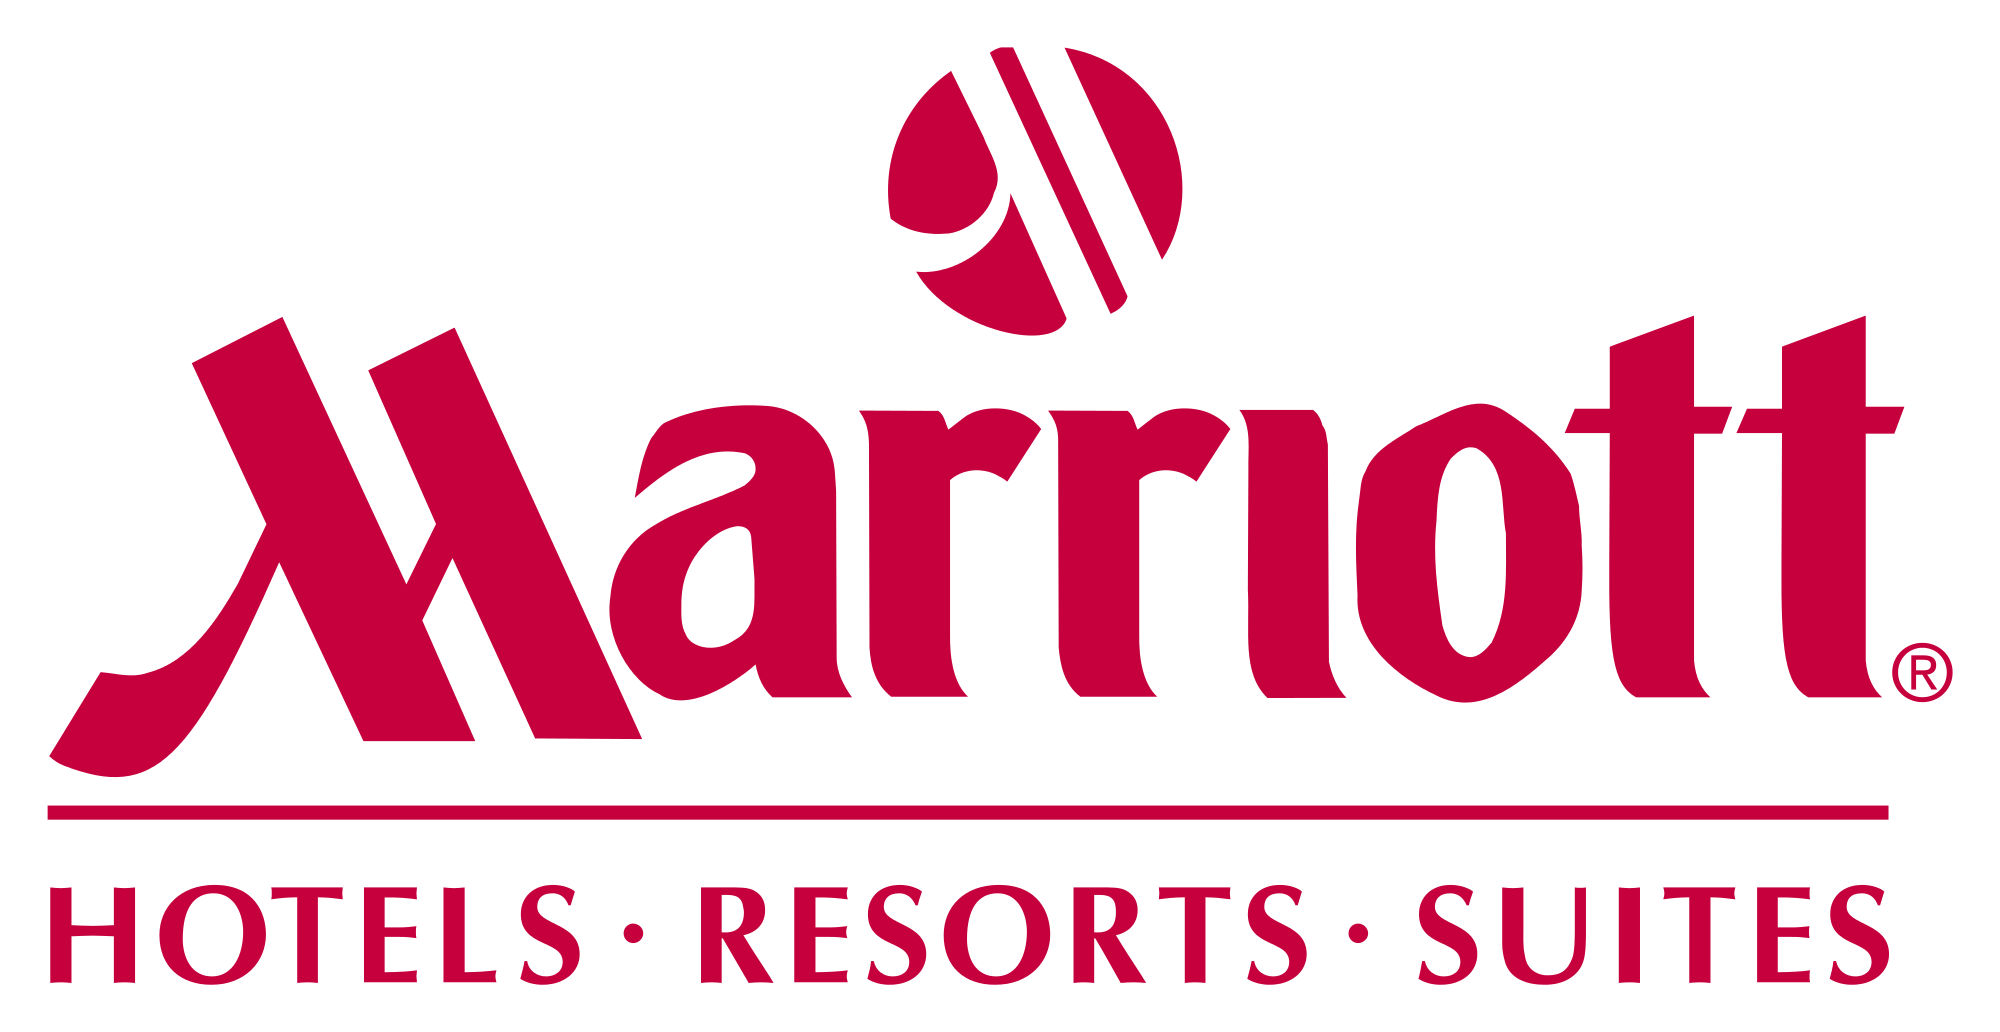 Marriott logo png. File svg wikimedia commons